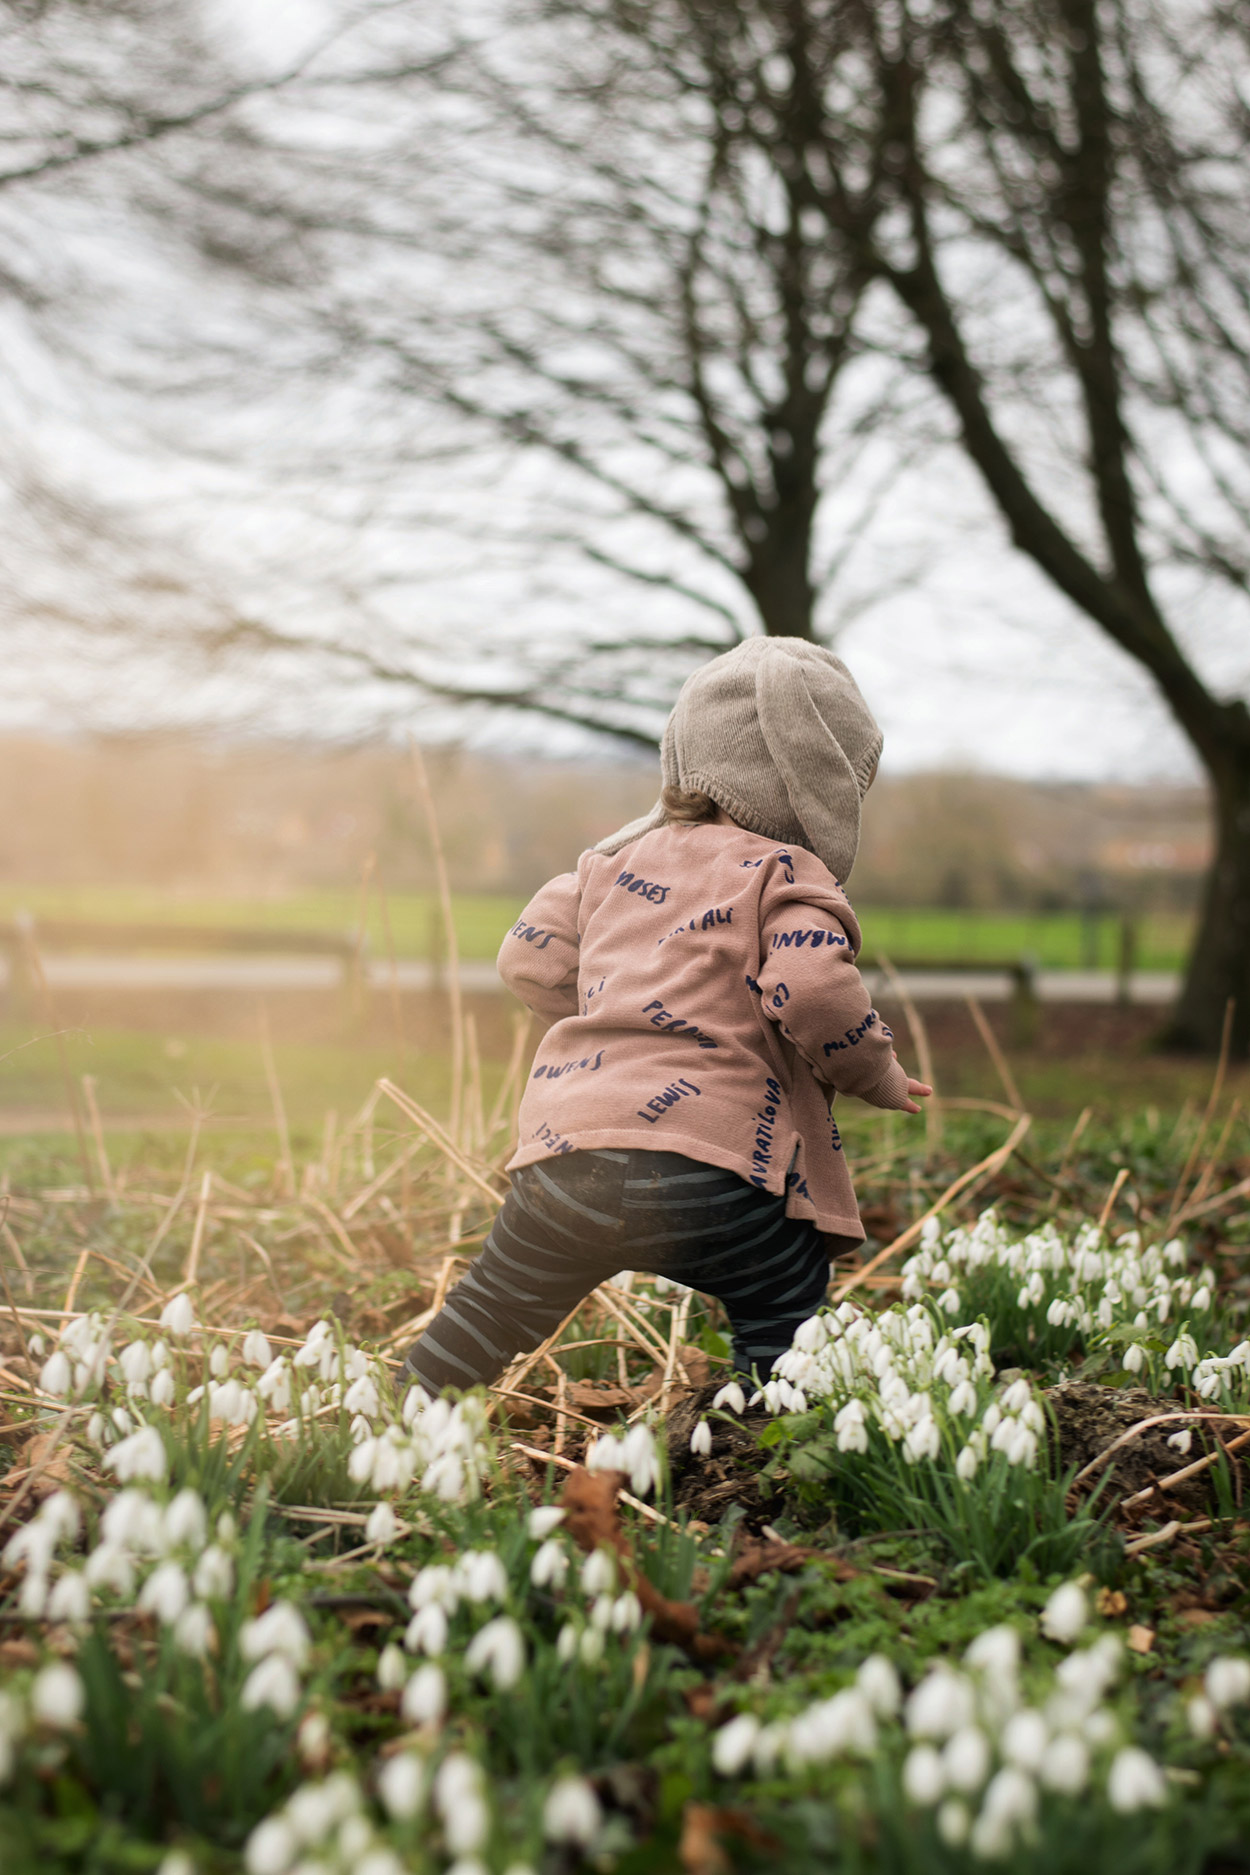 18 month old baby boy walking amongst the snowdrops and woodlands playing outdoors wearing Bobo Choses cardigan, Smafolk panda top and H&M bunny hat